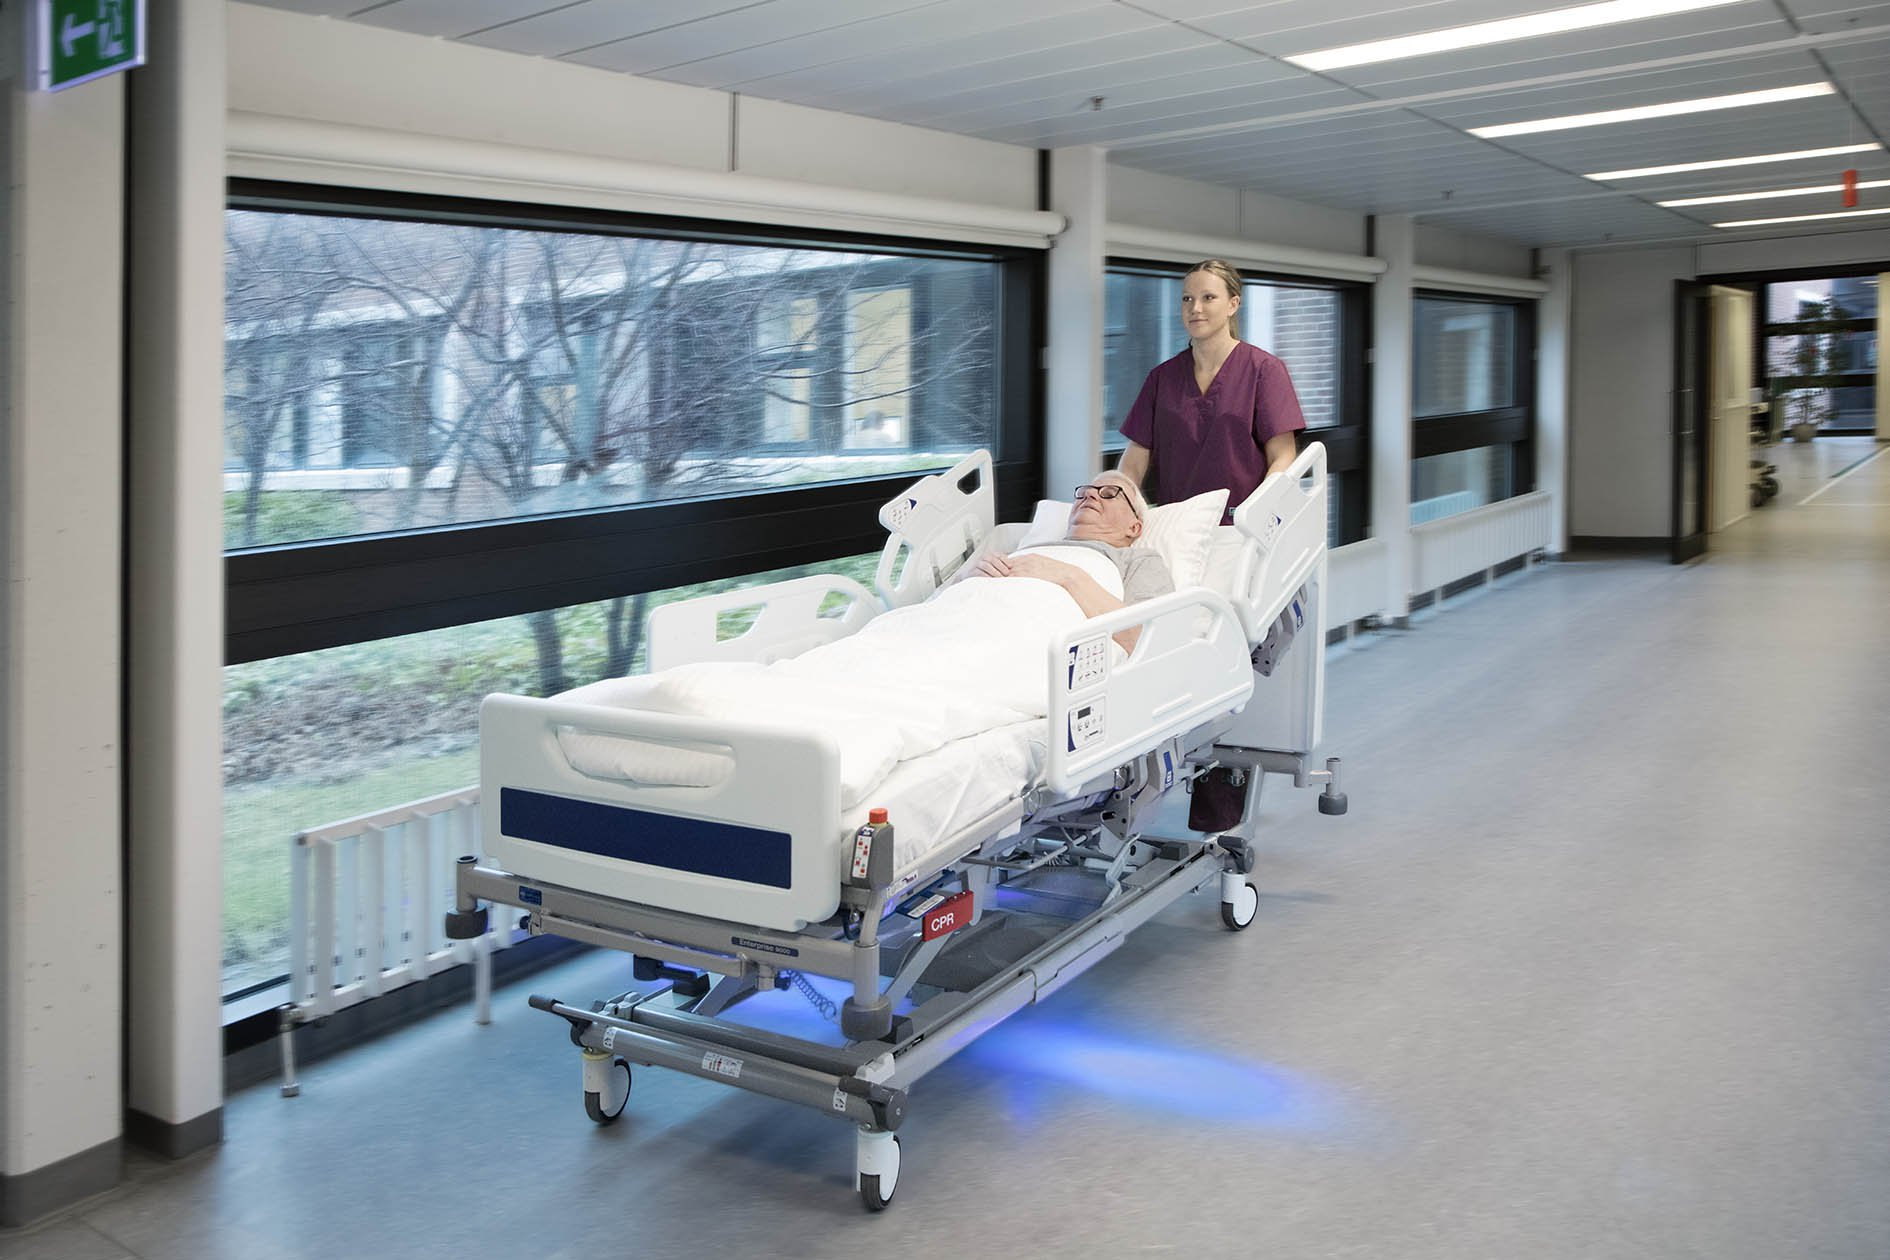 Safe Patient Handling when transporting patients